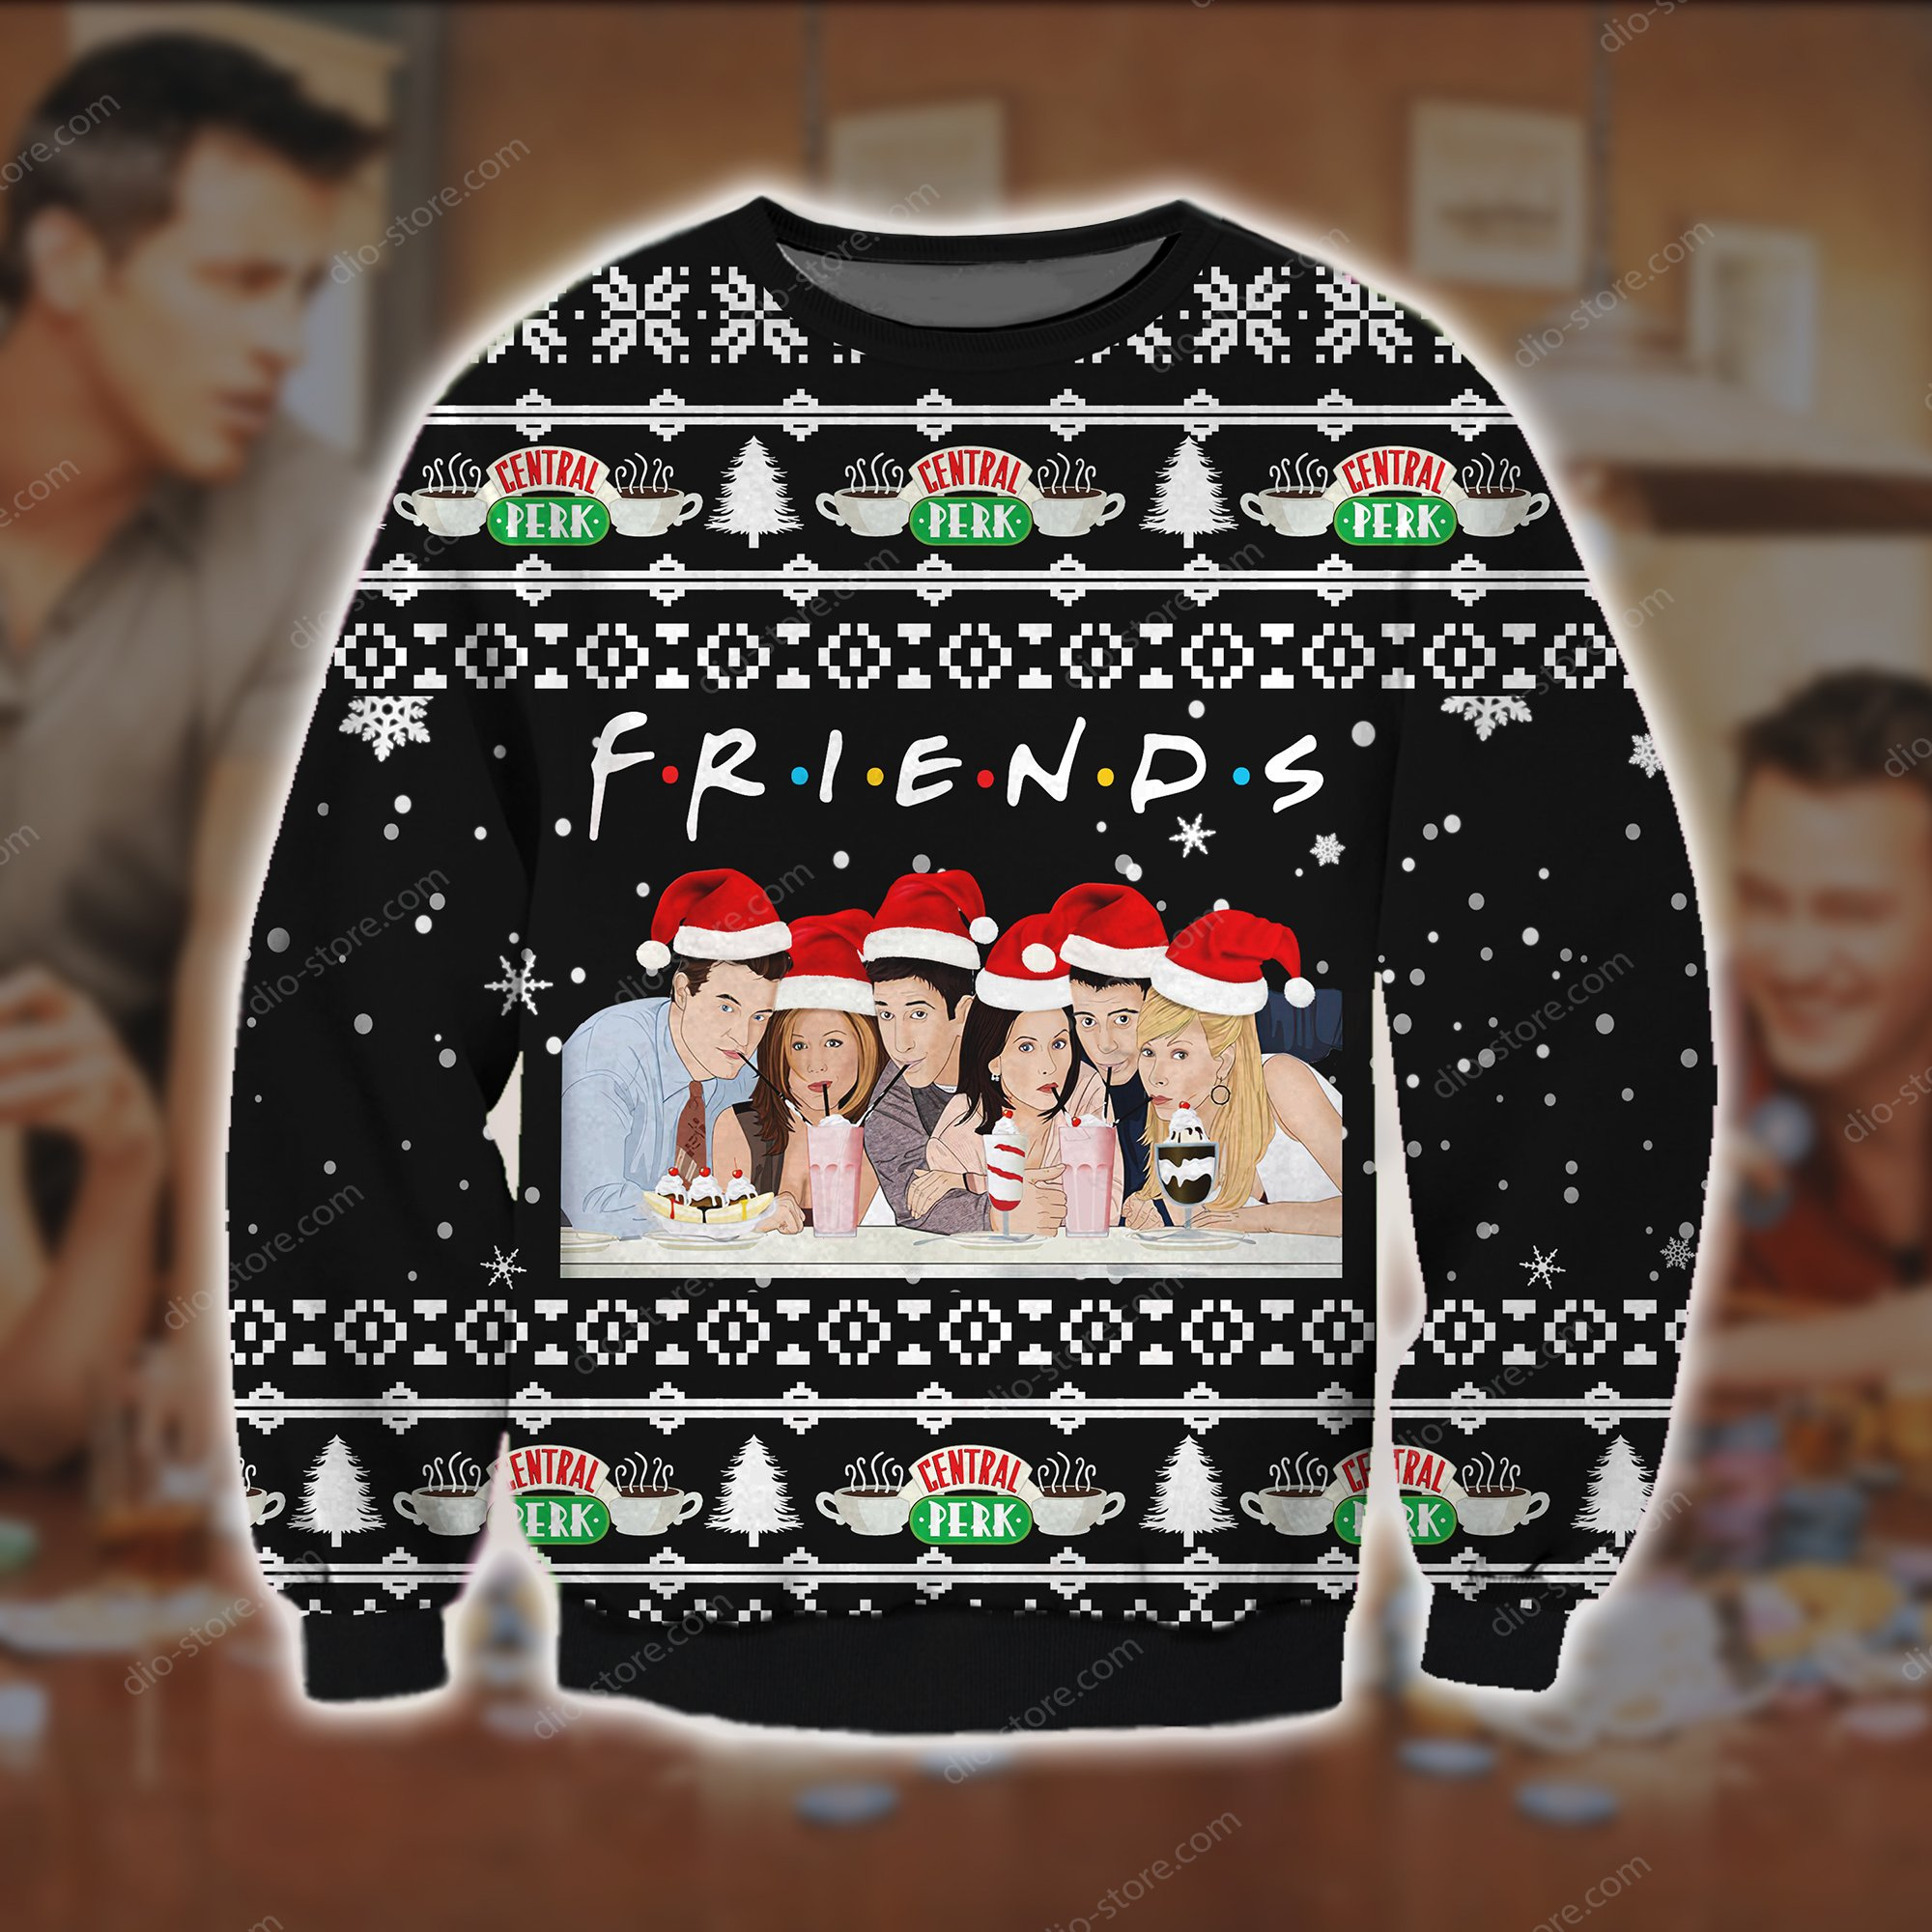 friend tv show all over printed ugly christmas sweater 2 - Copy